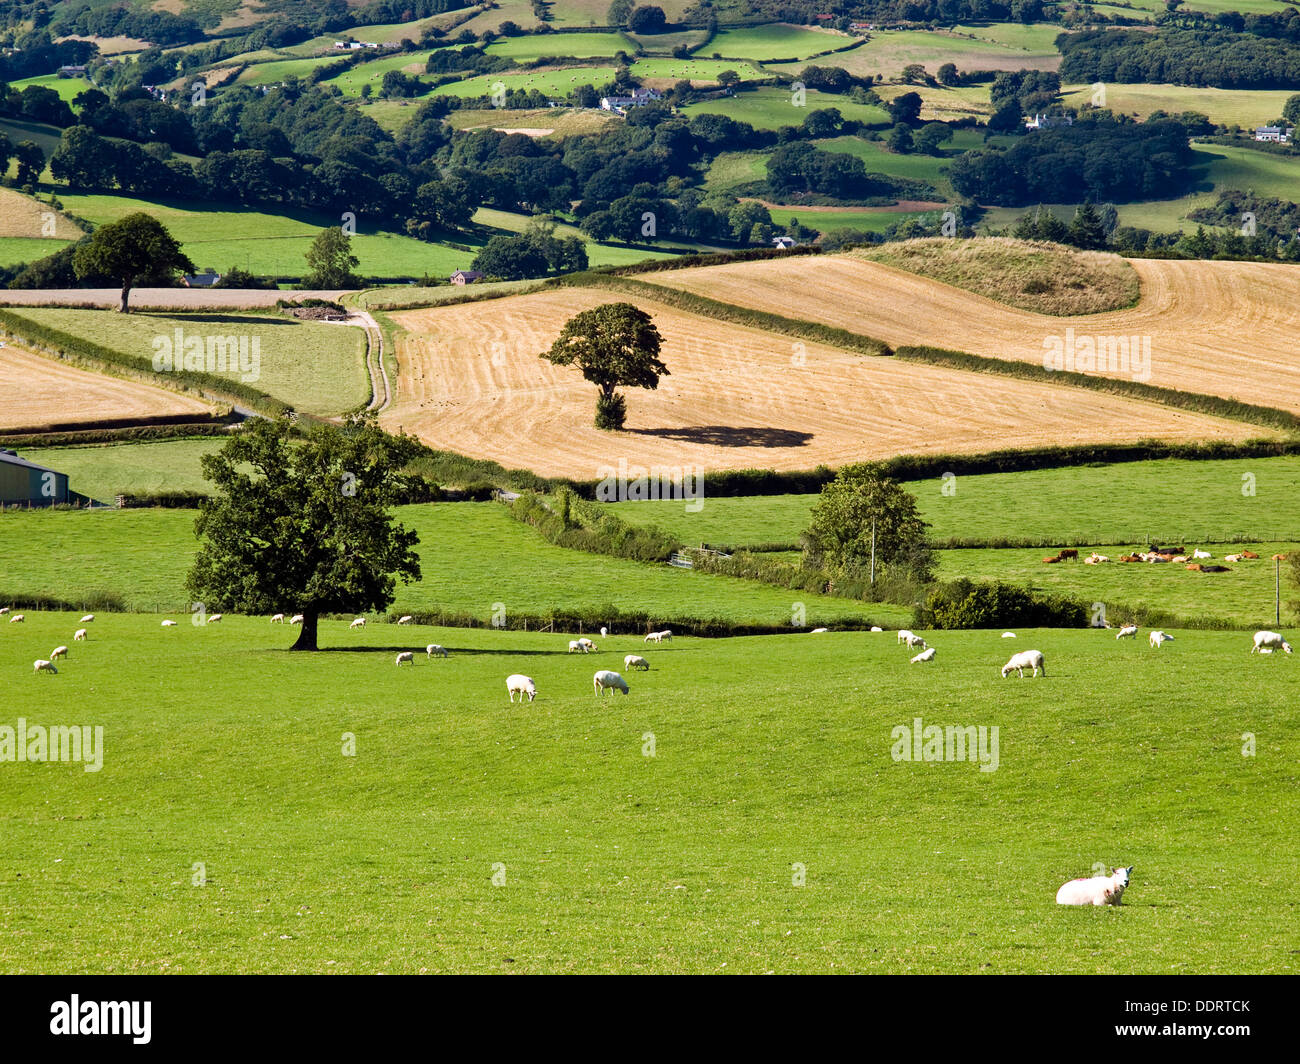 The Vale of Clwyd, Wales - Stock Image